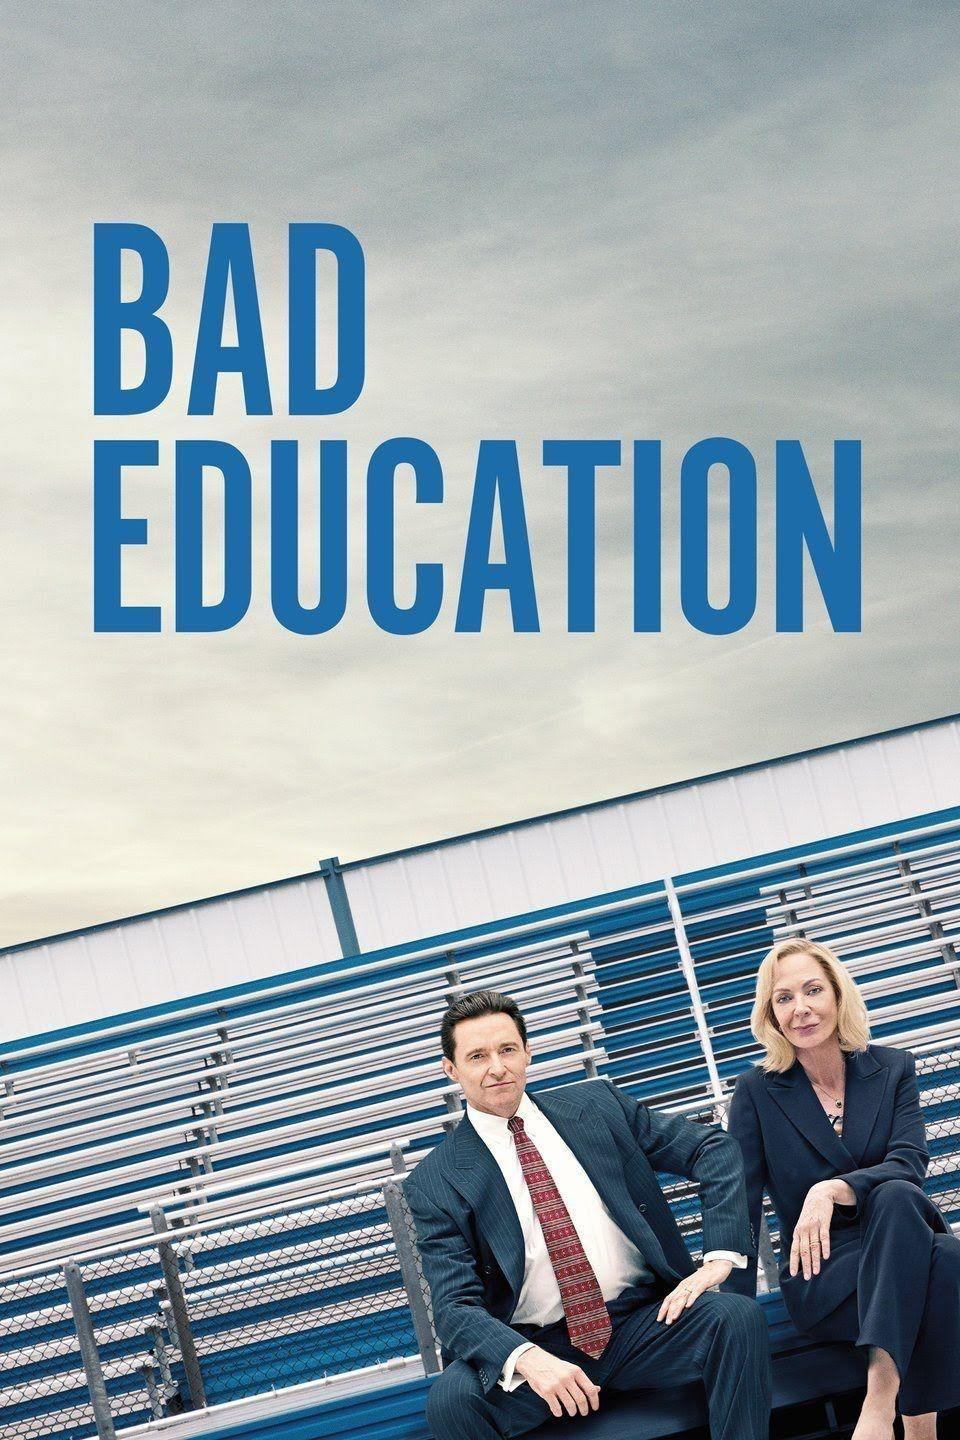 """<p><a class=""""link rapid-noclick-resp"""" href=""""https://www.amazon.com/Bad-Education-Ray-Romano/dp/B087HB16L1/ref=sr_1_1?crid=3GHRKW2B5RL9E&dchild=1&keywords=bad+education&qid=1614184415&s=instant-video&sprefix=bad+education%2Caps%2C164&sr=1-1&tag=syn-yahoo-20&ascsubtag=%5Bartid%7C10063.g.35716832%5Bsrc%7Cyahoo-us"""" rel=""""nofollow noopener"""" target=""""_blank"""" data-ylk=""""slk:Watch Now"""">Watch Now</a></p><p>Hugh Jackman and Allison Janney star in <a href=""""https://www.townandcountrymag.com/leisure/arts-and-culture/a32291684/bad-education-hbo-true-story-frank-tassone-pamela-gluckin/"""" rel=""""nofollow noopener"""" target=""""_blank"""" data-ylk=""""slk:this true story tale"""" class=""""link rapid-noclick-resp"""">this true story tale</a> about the largest public school embezzlement in U.S. history that took place in a tony Long Island suburb. Jackman plays Frank Tassone, a charismatic superintendent who, with his associate Pamela Gluckin (Janney), stole $11.2 million from the school budget to finance a Park Avenue apartment, trips to Vegas, expensive suits and cars, and plastic surgery, among other things.</p>"""